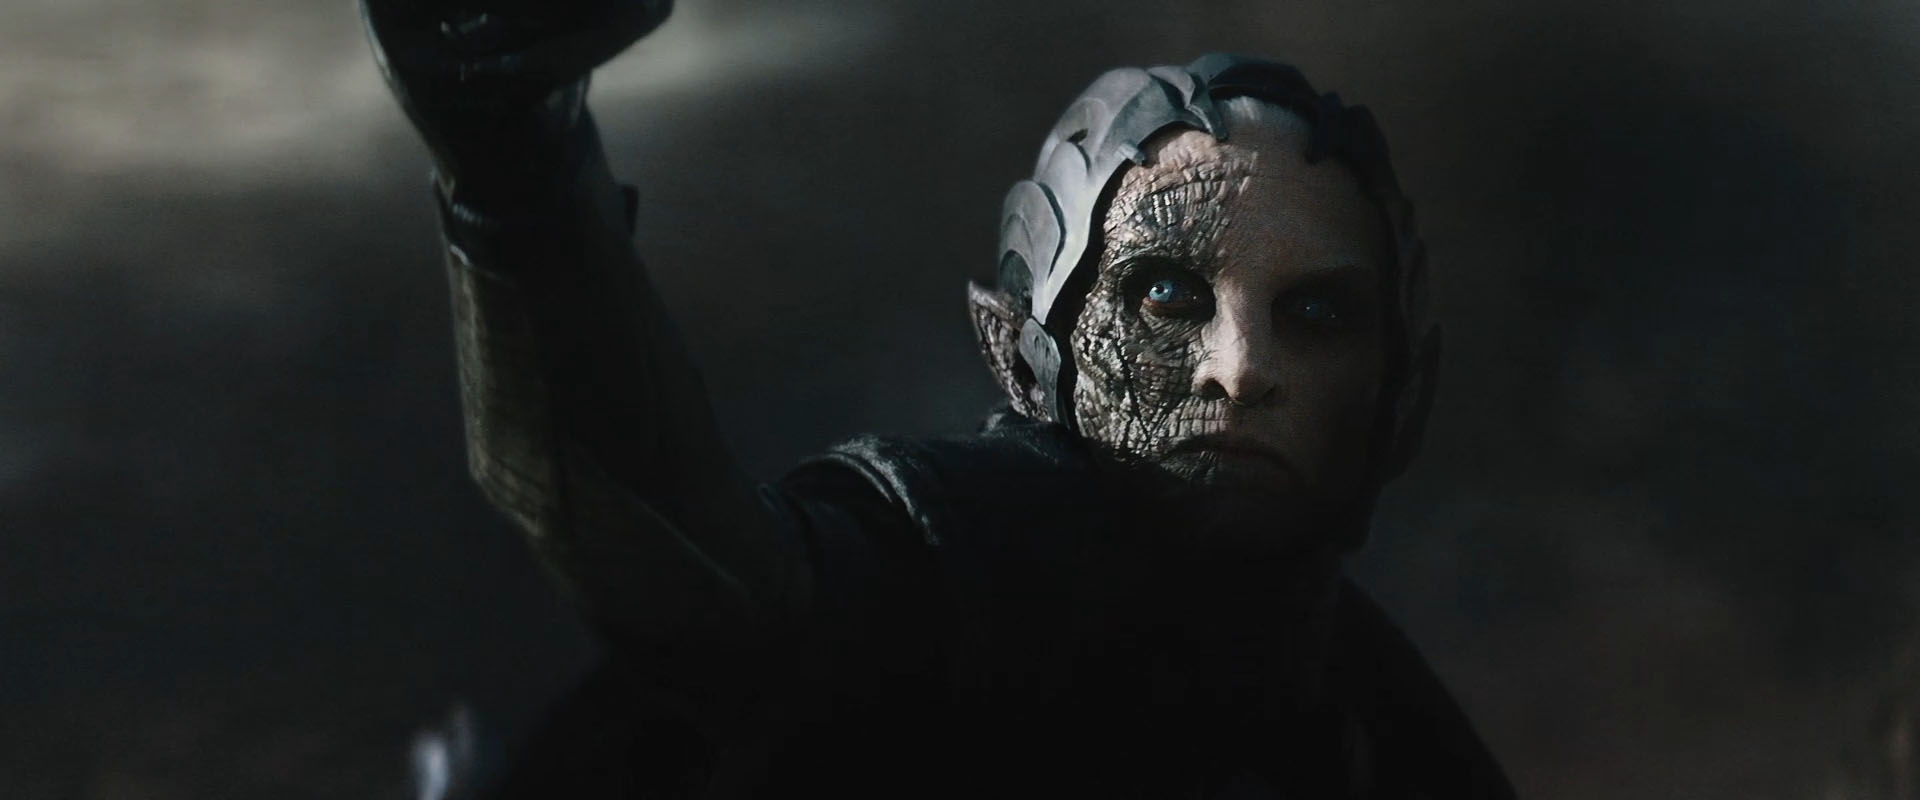 Top 10 things we learned from new Thor: The Dark World trailer